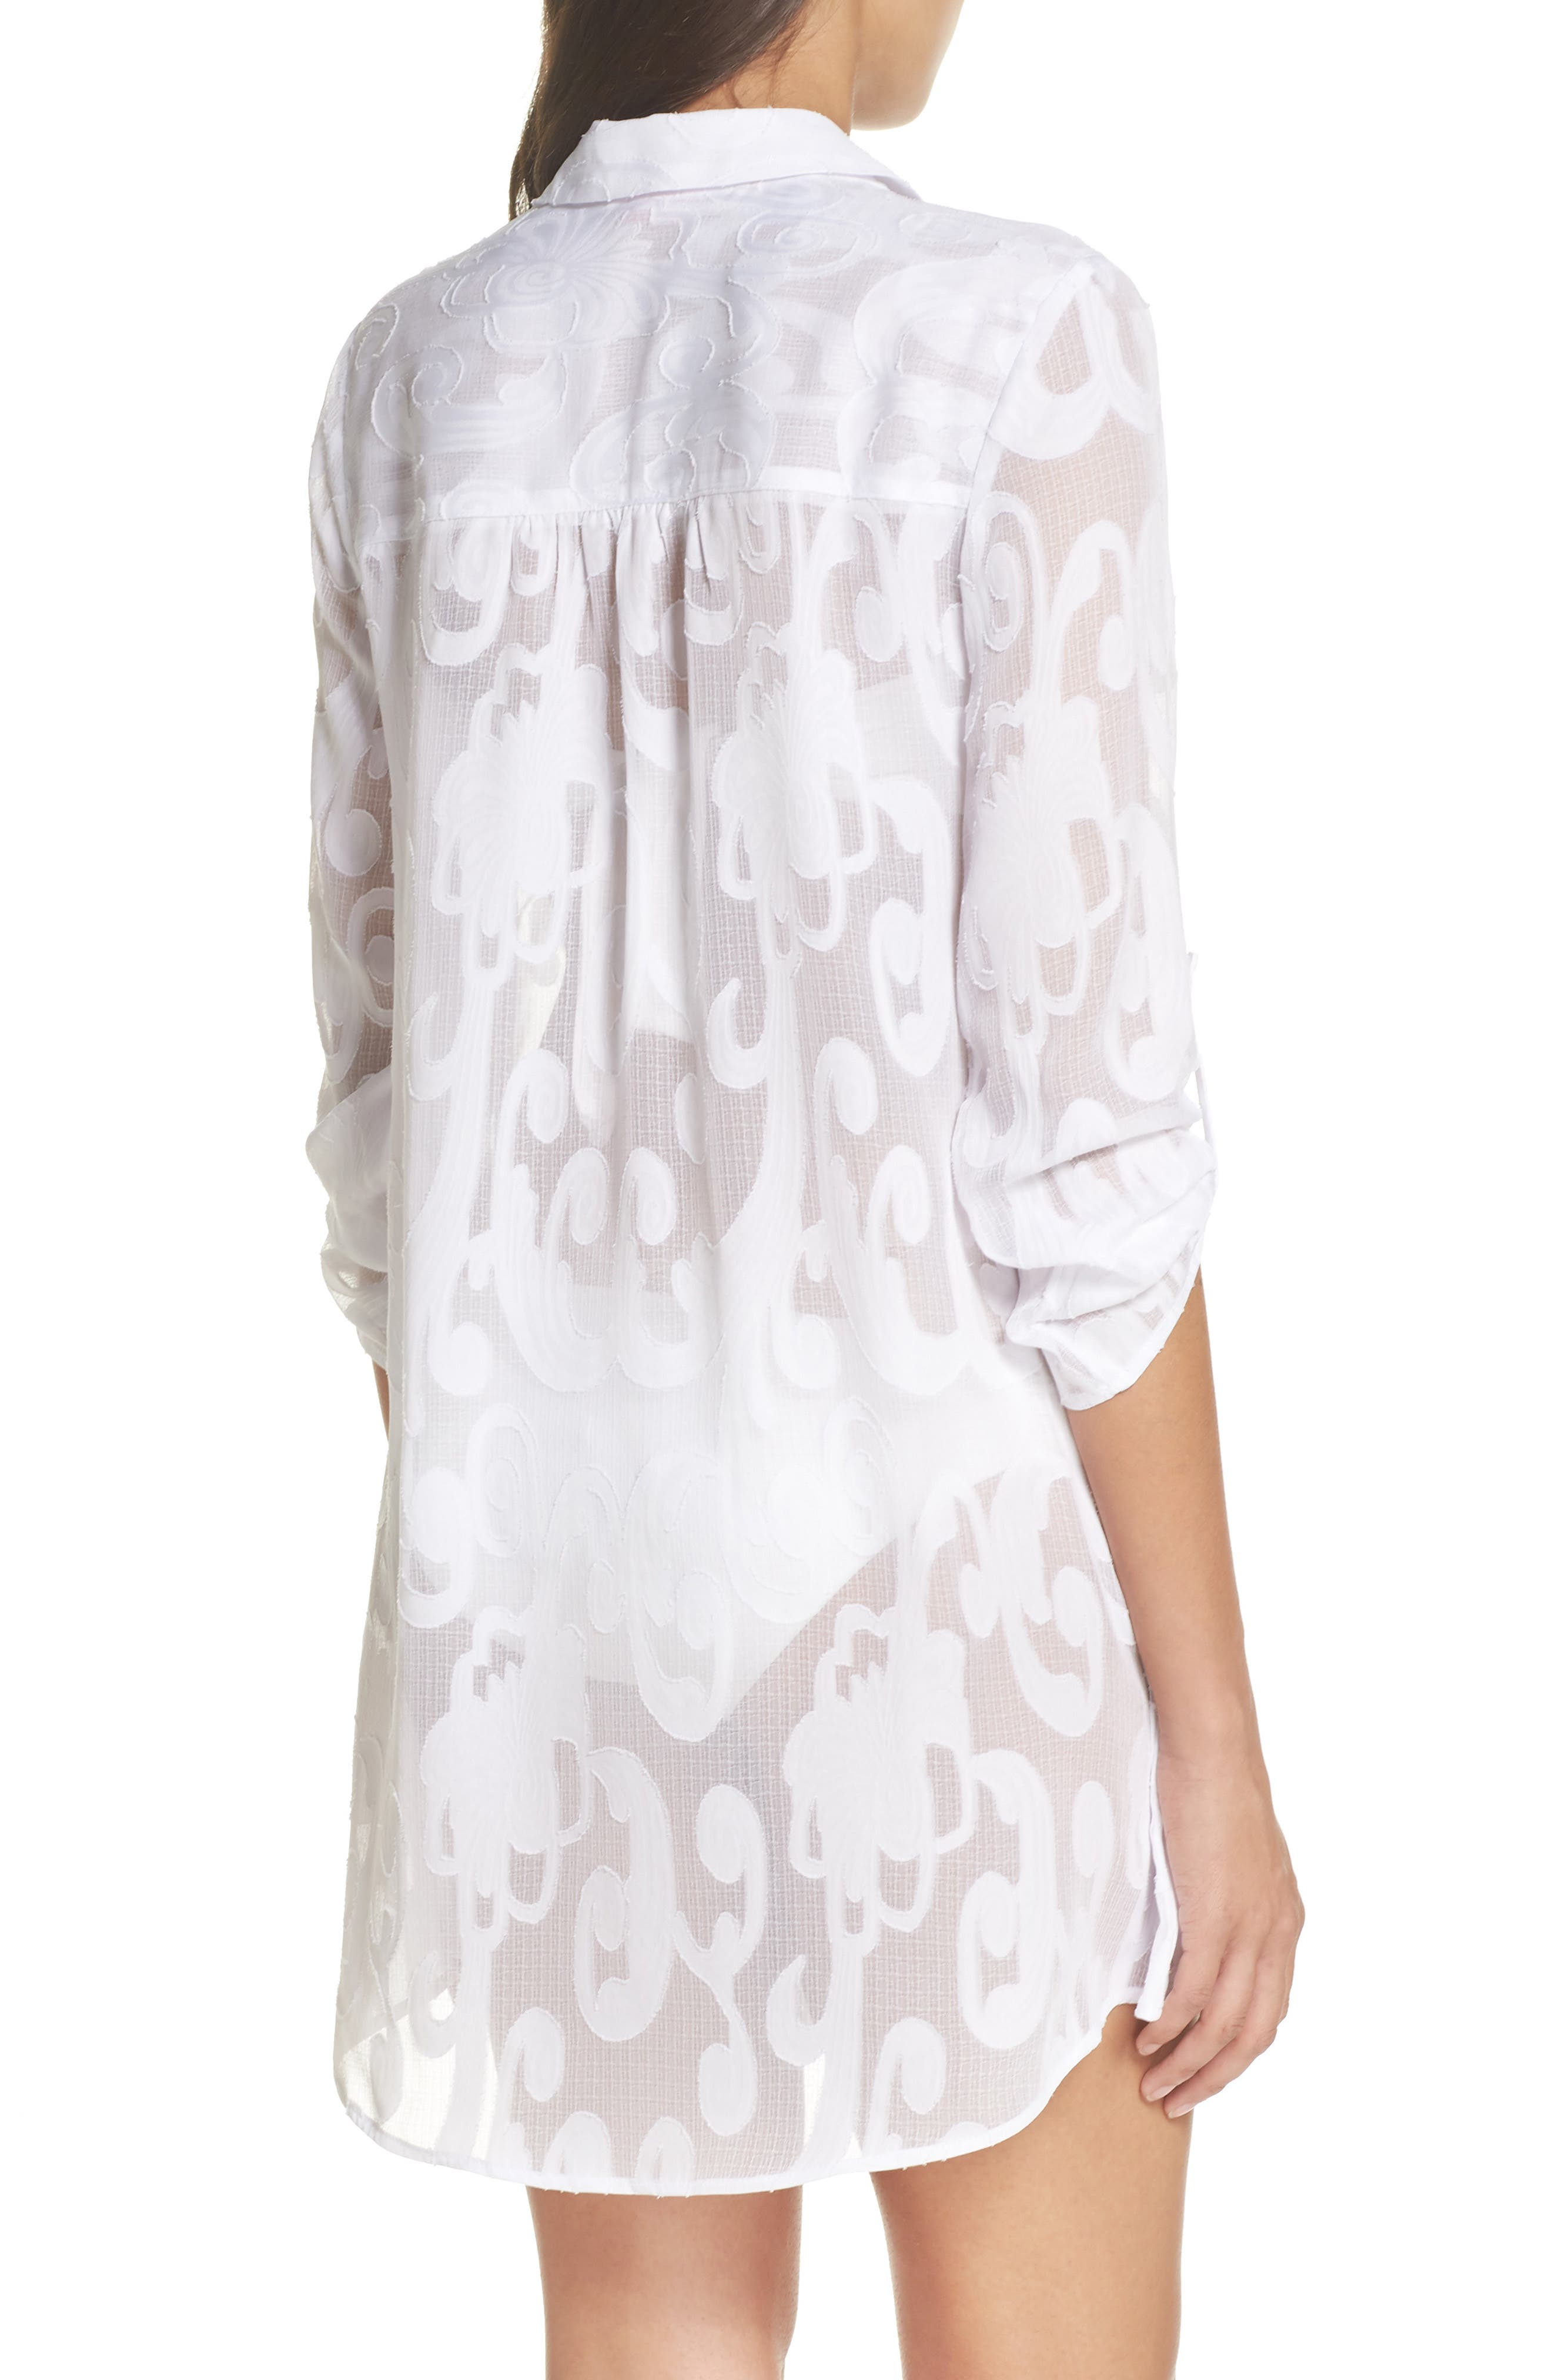 Natalie Shirtdress Cover-Up,                             Alternate thumbnail 2, color,                             Resort White Poly Crepe Swirl